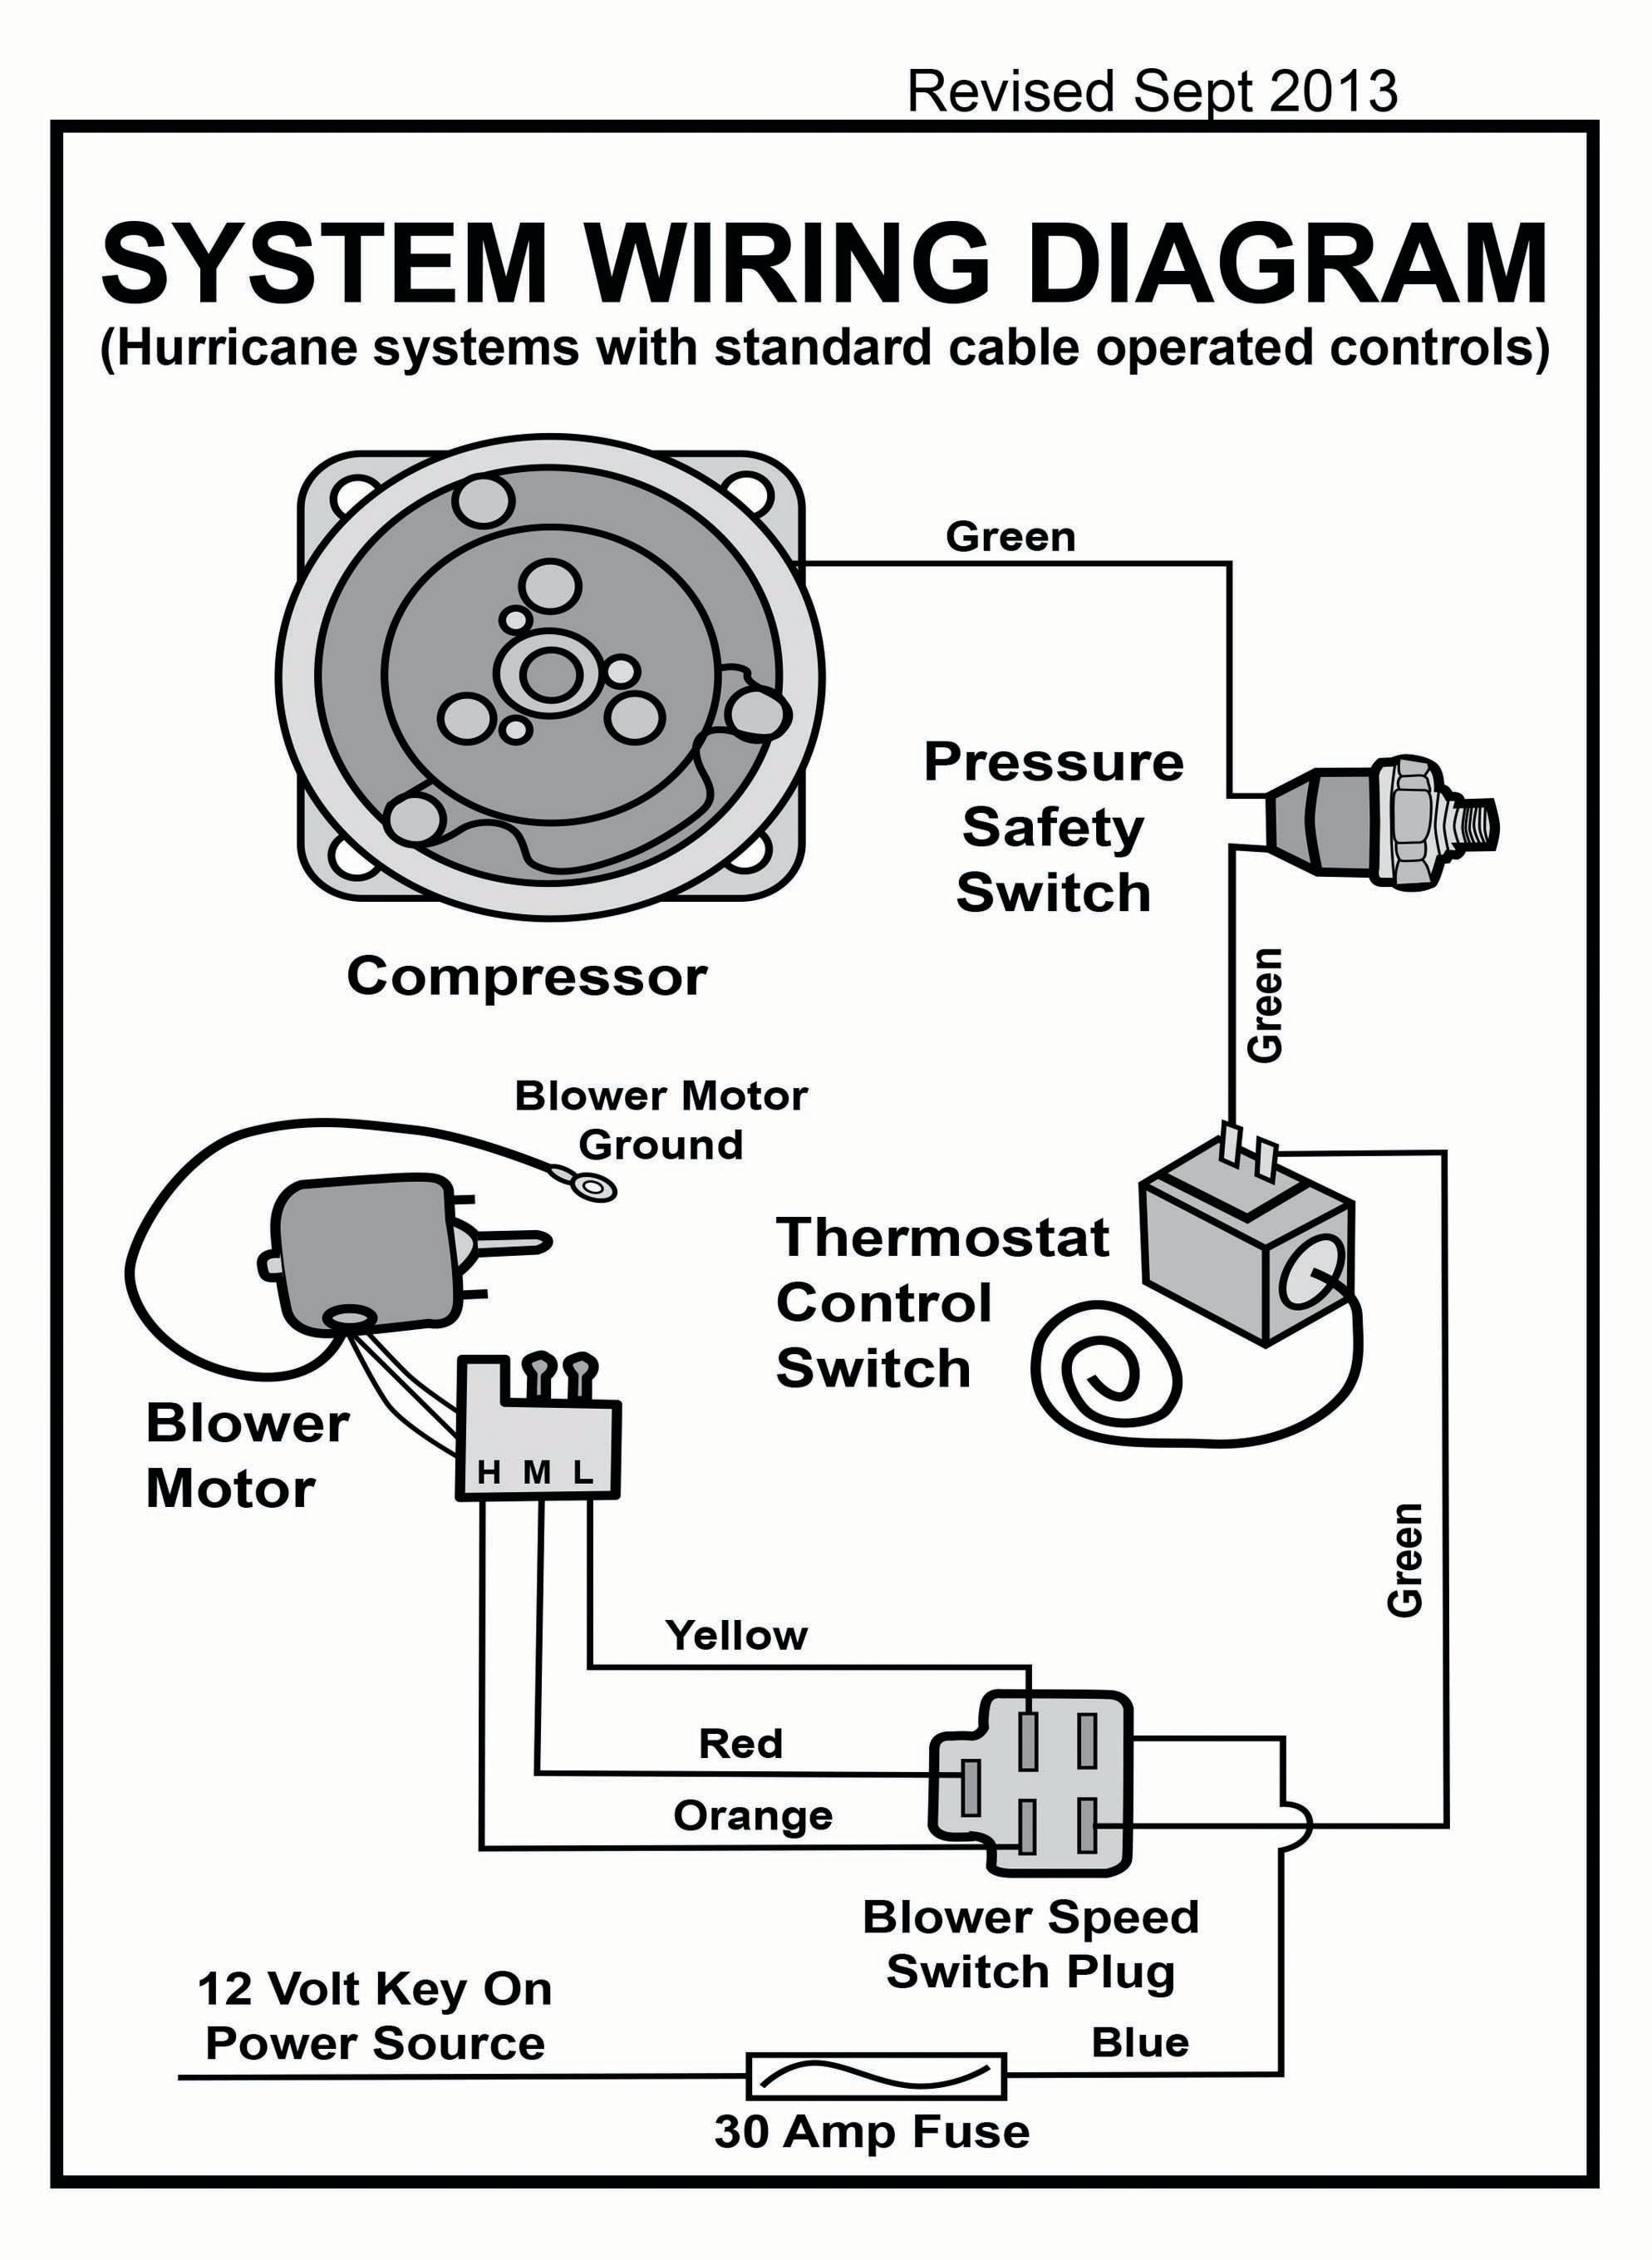 Ac Trinary Switch Wiring Diagram Get Free Image About Wiring ... on